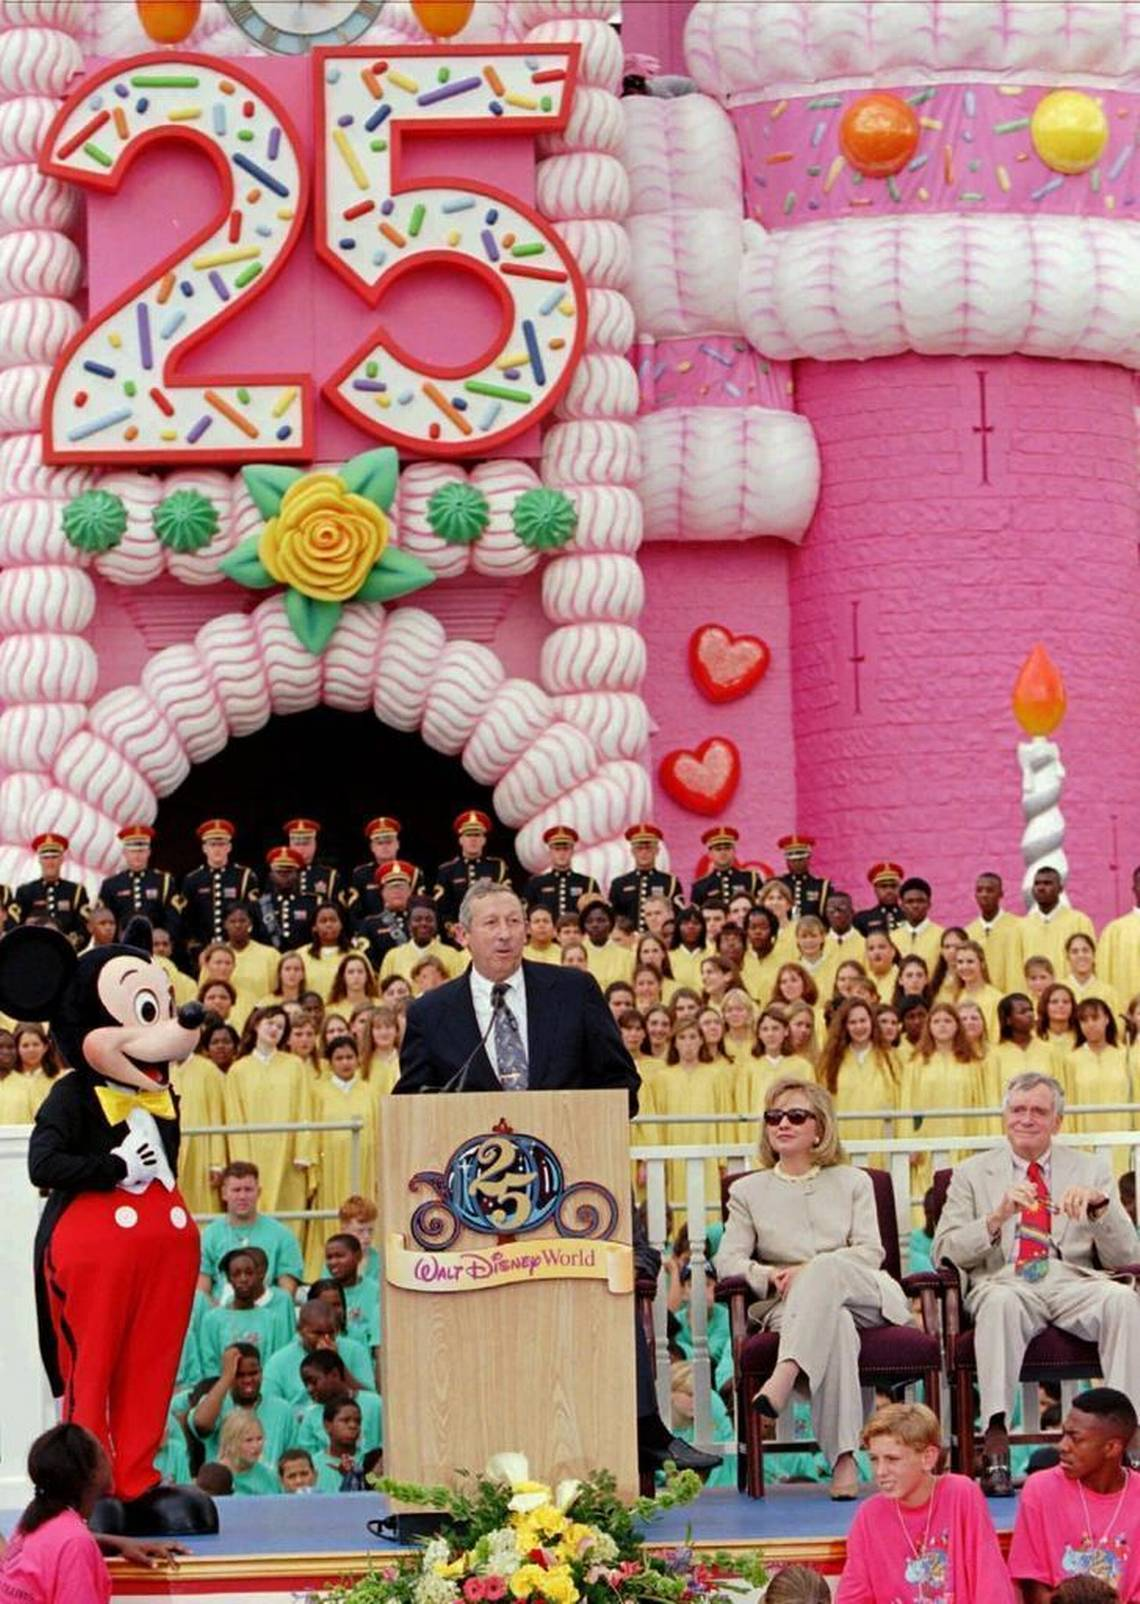 Roy Disney, second from left, nephew of Walt Disney, addresses the crowd along with Mickey Mouse, First Lady Hillary Rodham Clinton, and Fla. Governor Lawton Chiles during the 25th anniversary rededication ceremonies Tuesday, Oct. 1, 1996, at Walt Disney World in Lake Buena Vista, FL